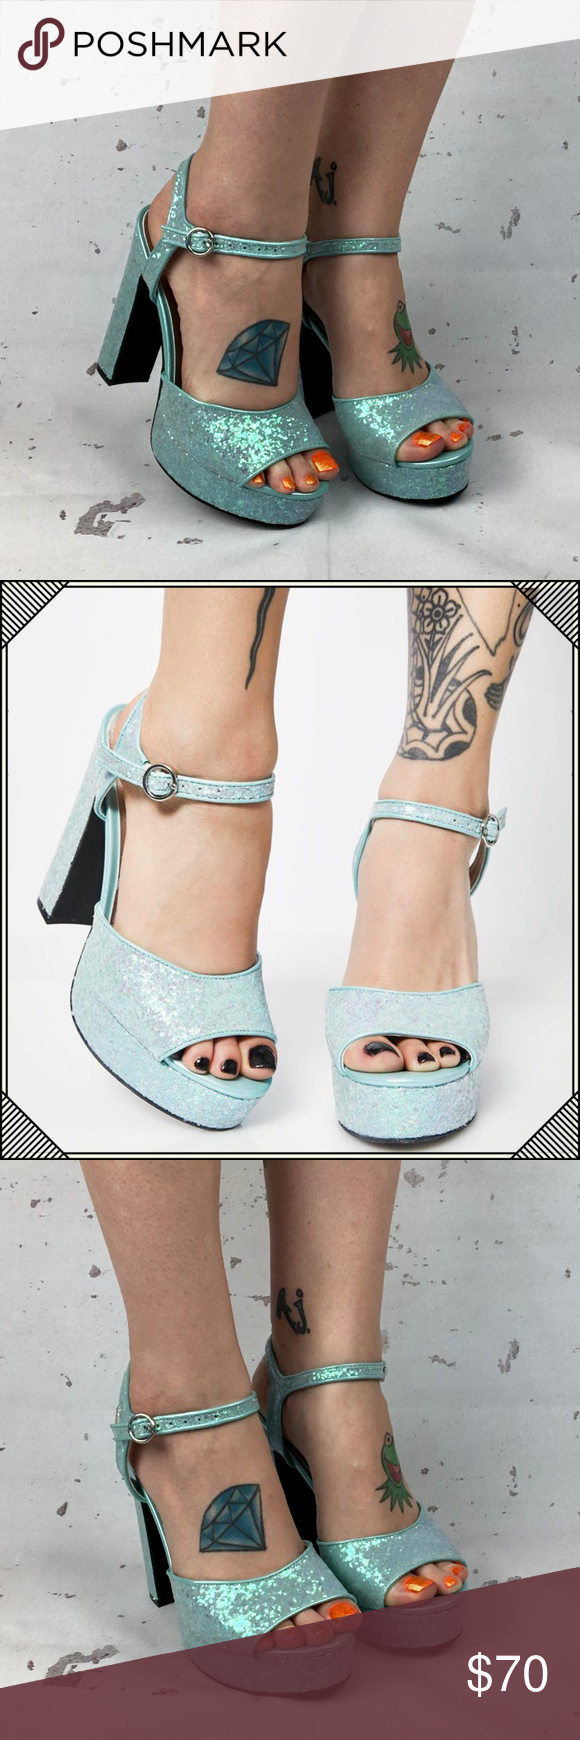 ebc499f9243 Glitter Platform Heels   Mint Green Chunky Heel Brand new! • Ask all  questions prior to purchase • Bundle   save • Feel free to make your best  offer!